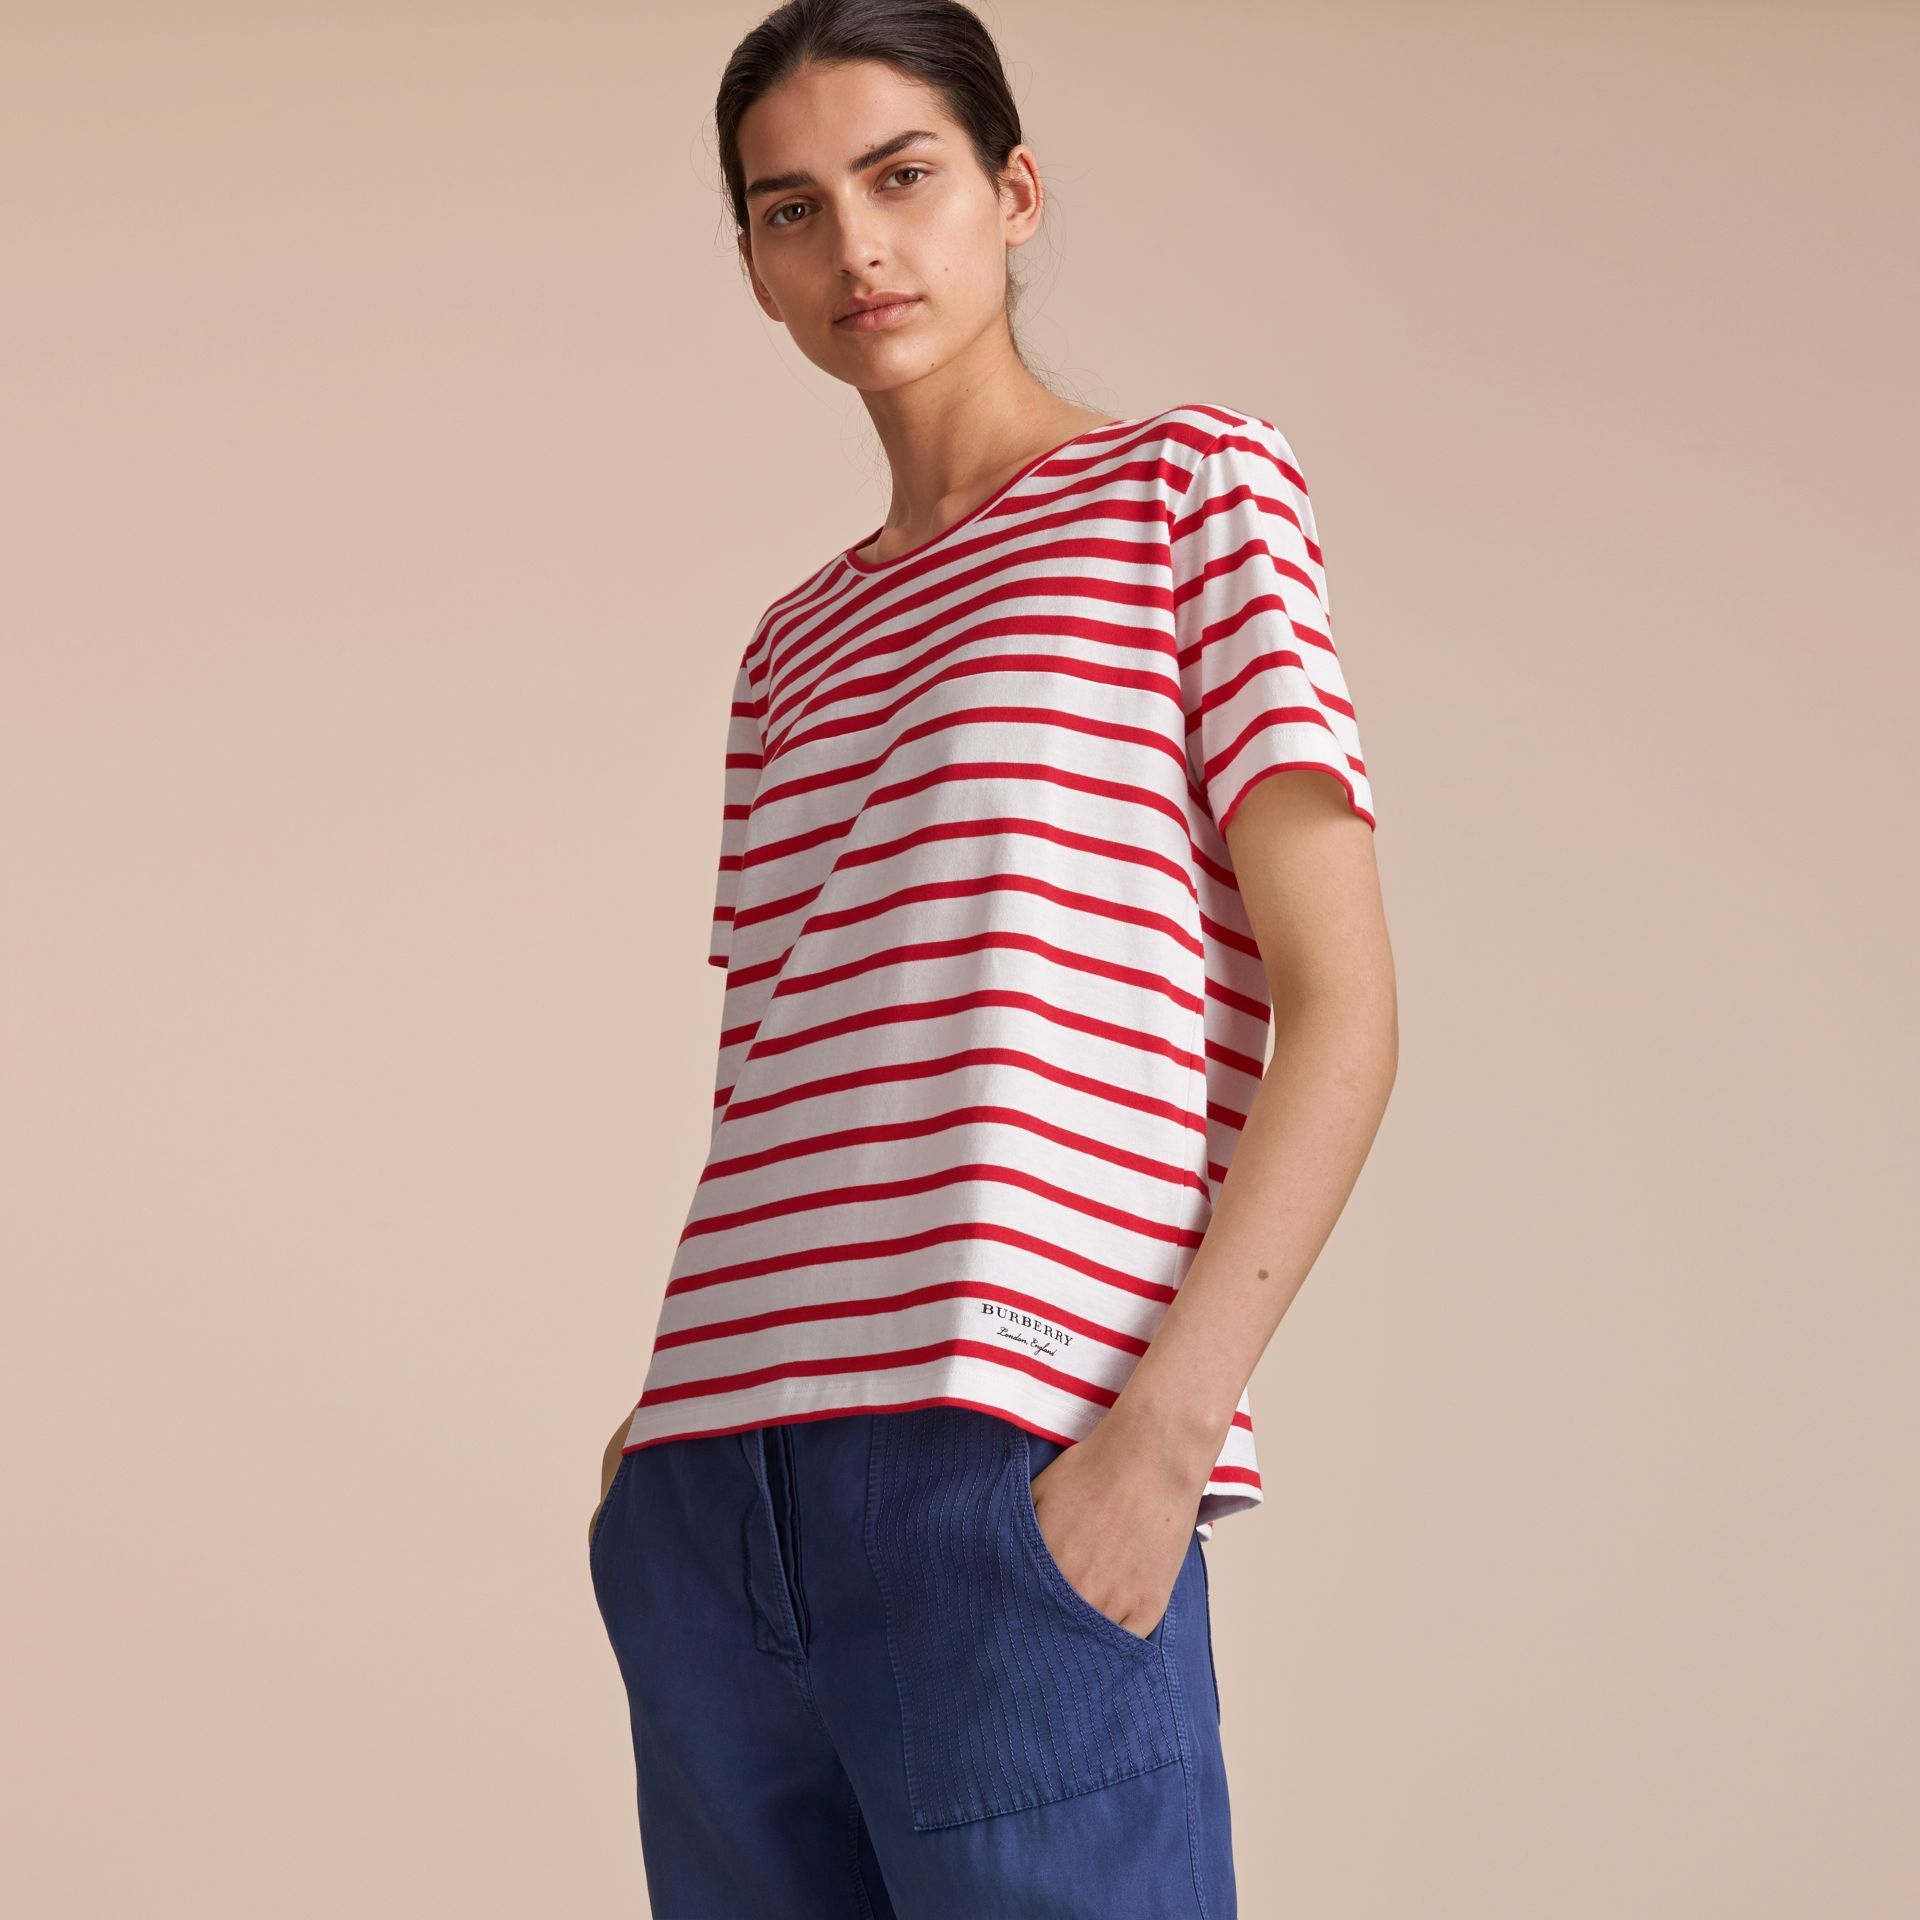 Breton Stripe Cotton T-shirt in Military Red/white - Women | Burberry United Kingdom - gallery image 6